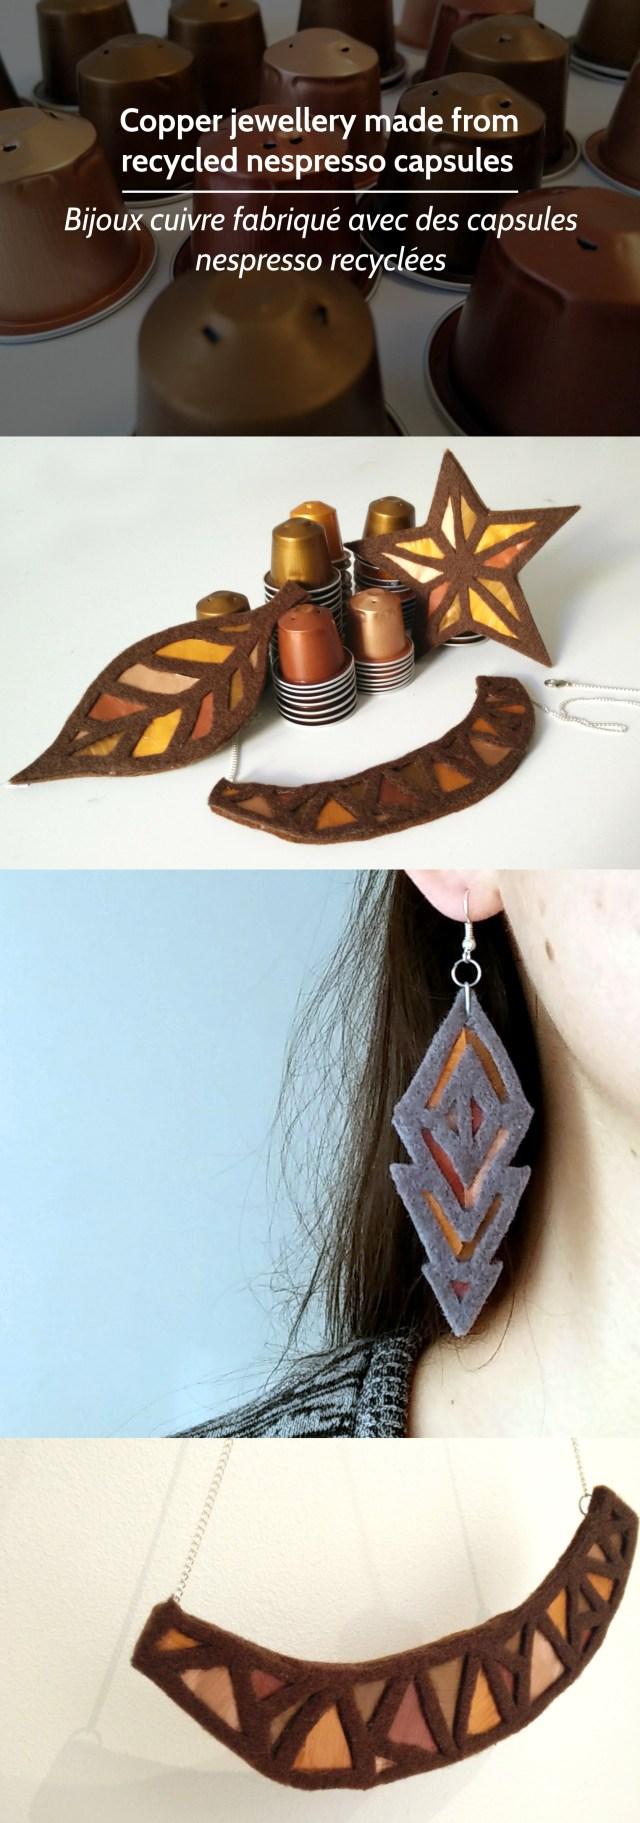 Copper jewellery made from nespresso capsules